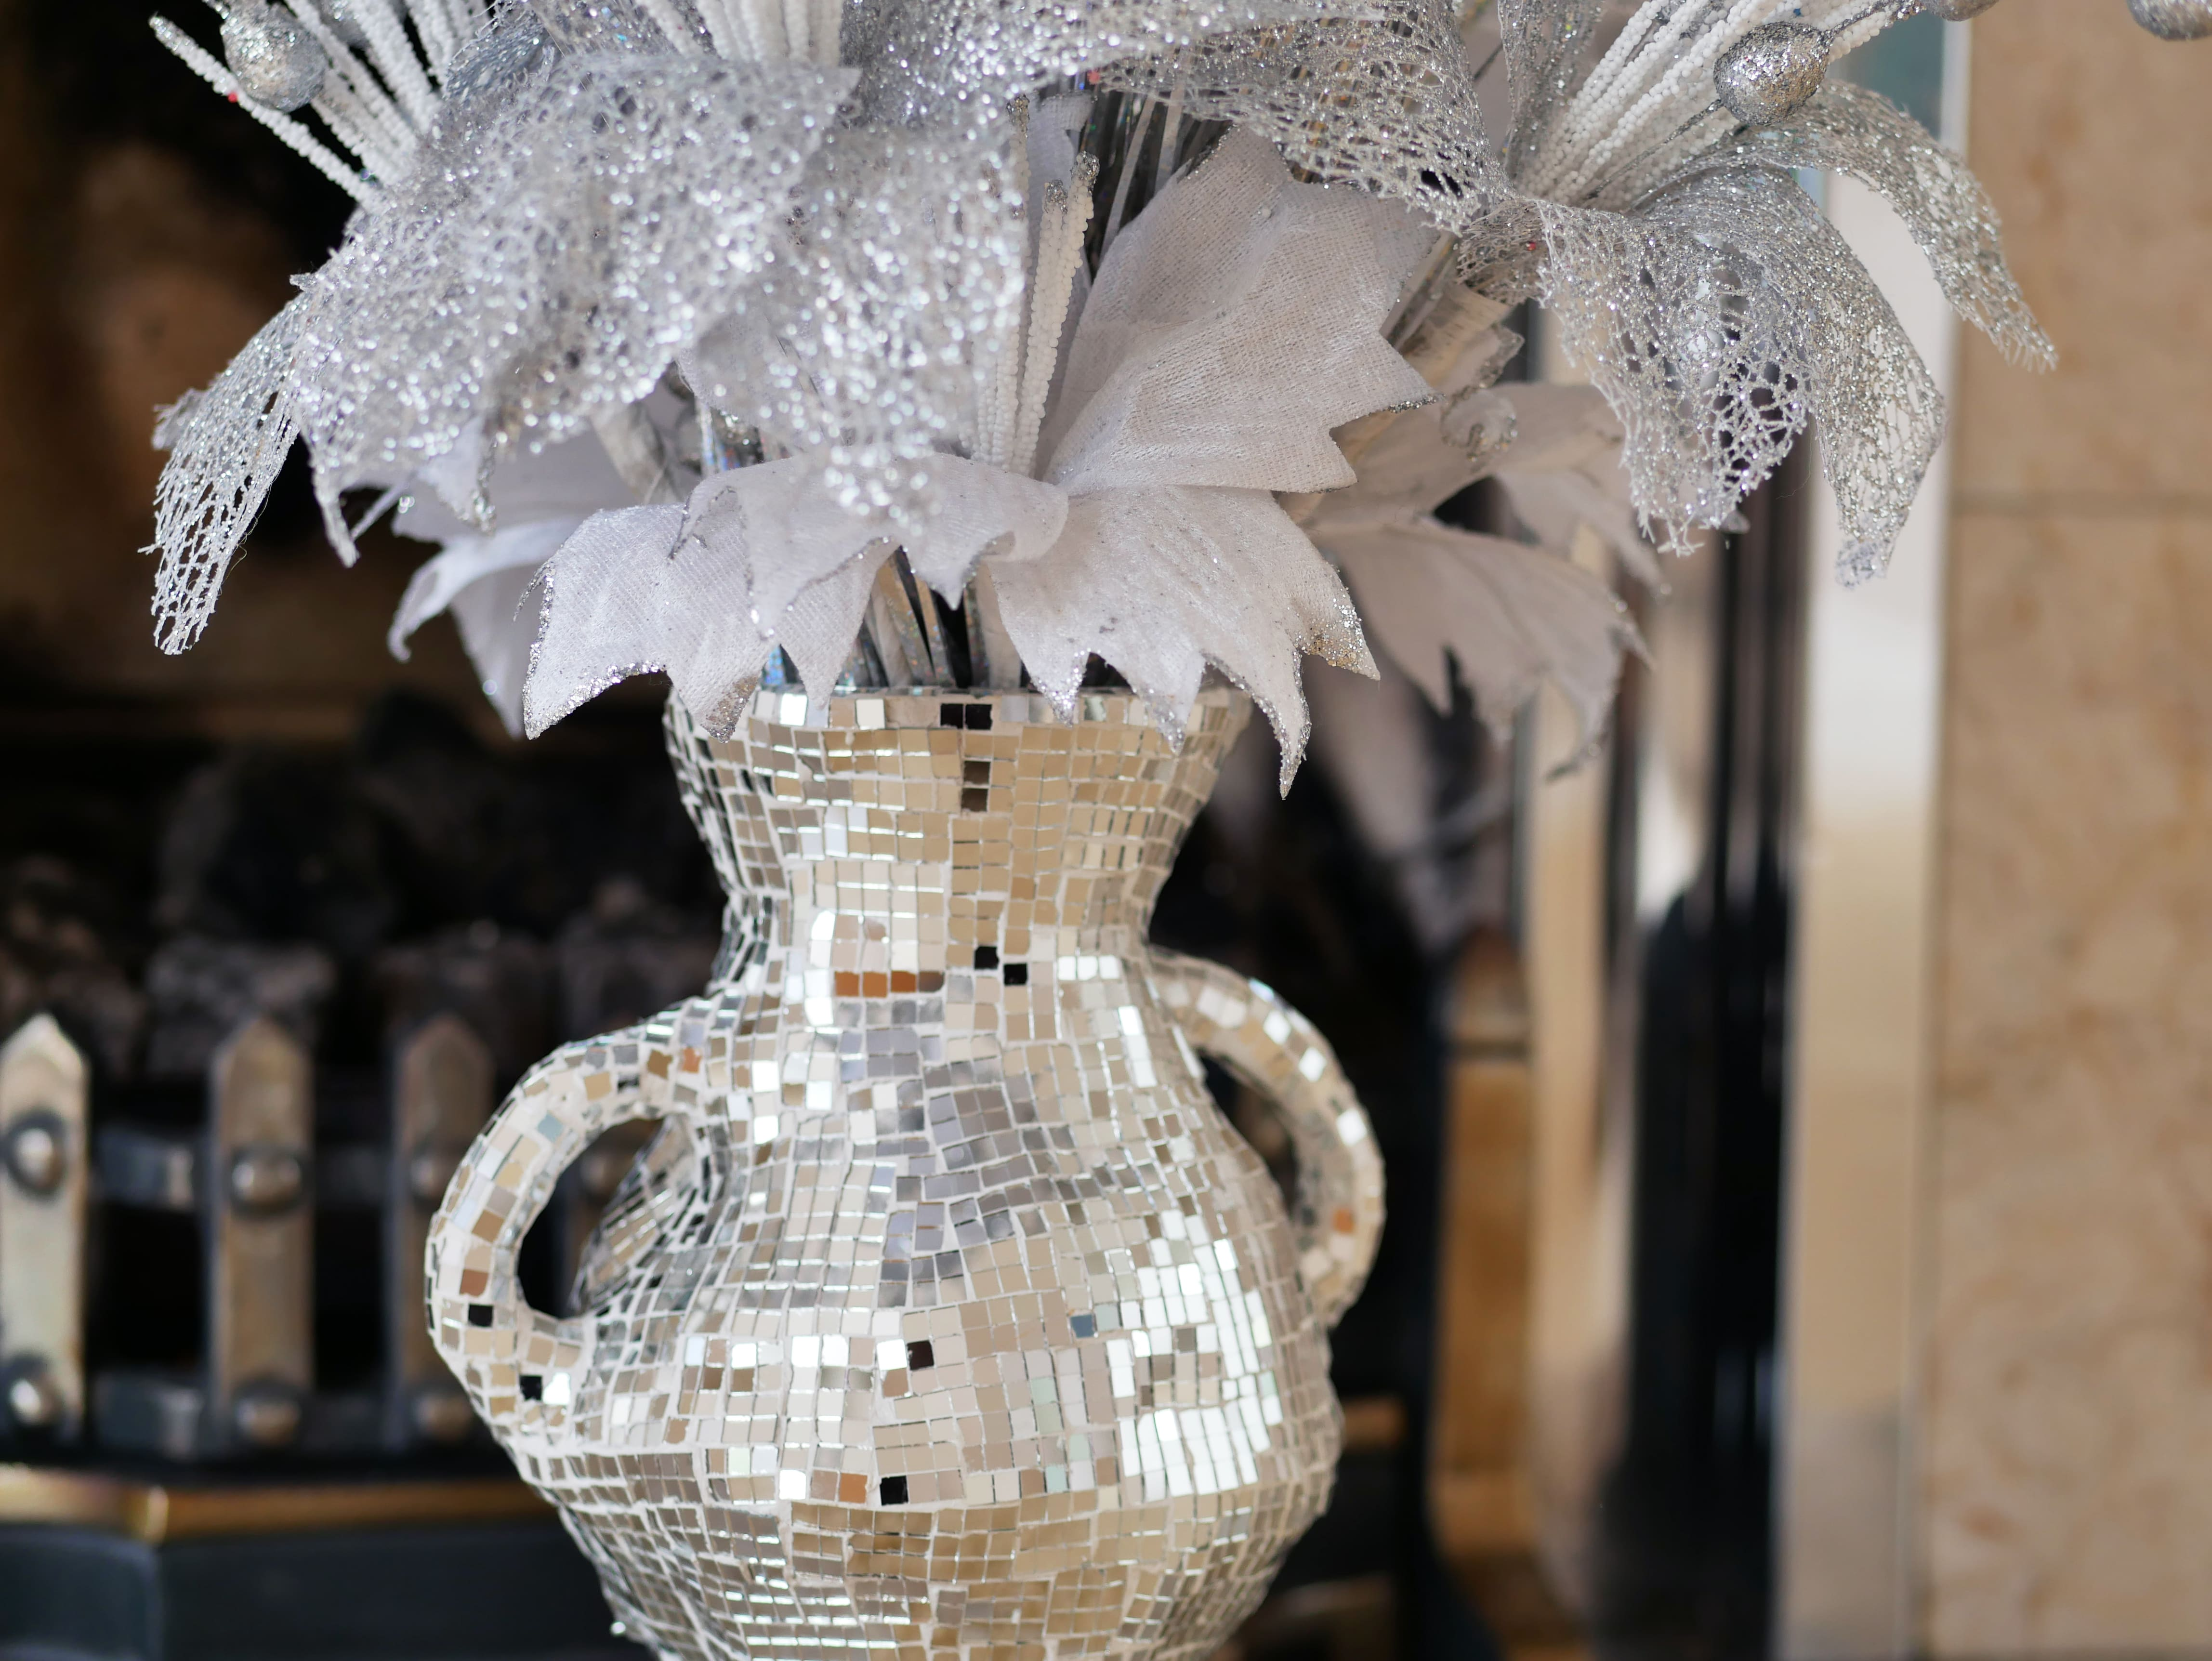 A detail shot of a vase with a mirrored surface, which holds an arrangement of artificial, glittery, silver and white flowers and sits on a mantelpiece.